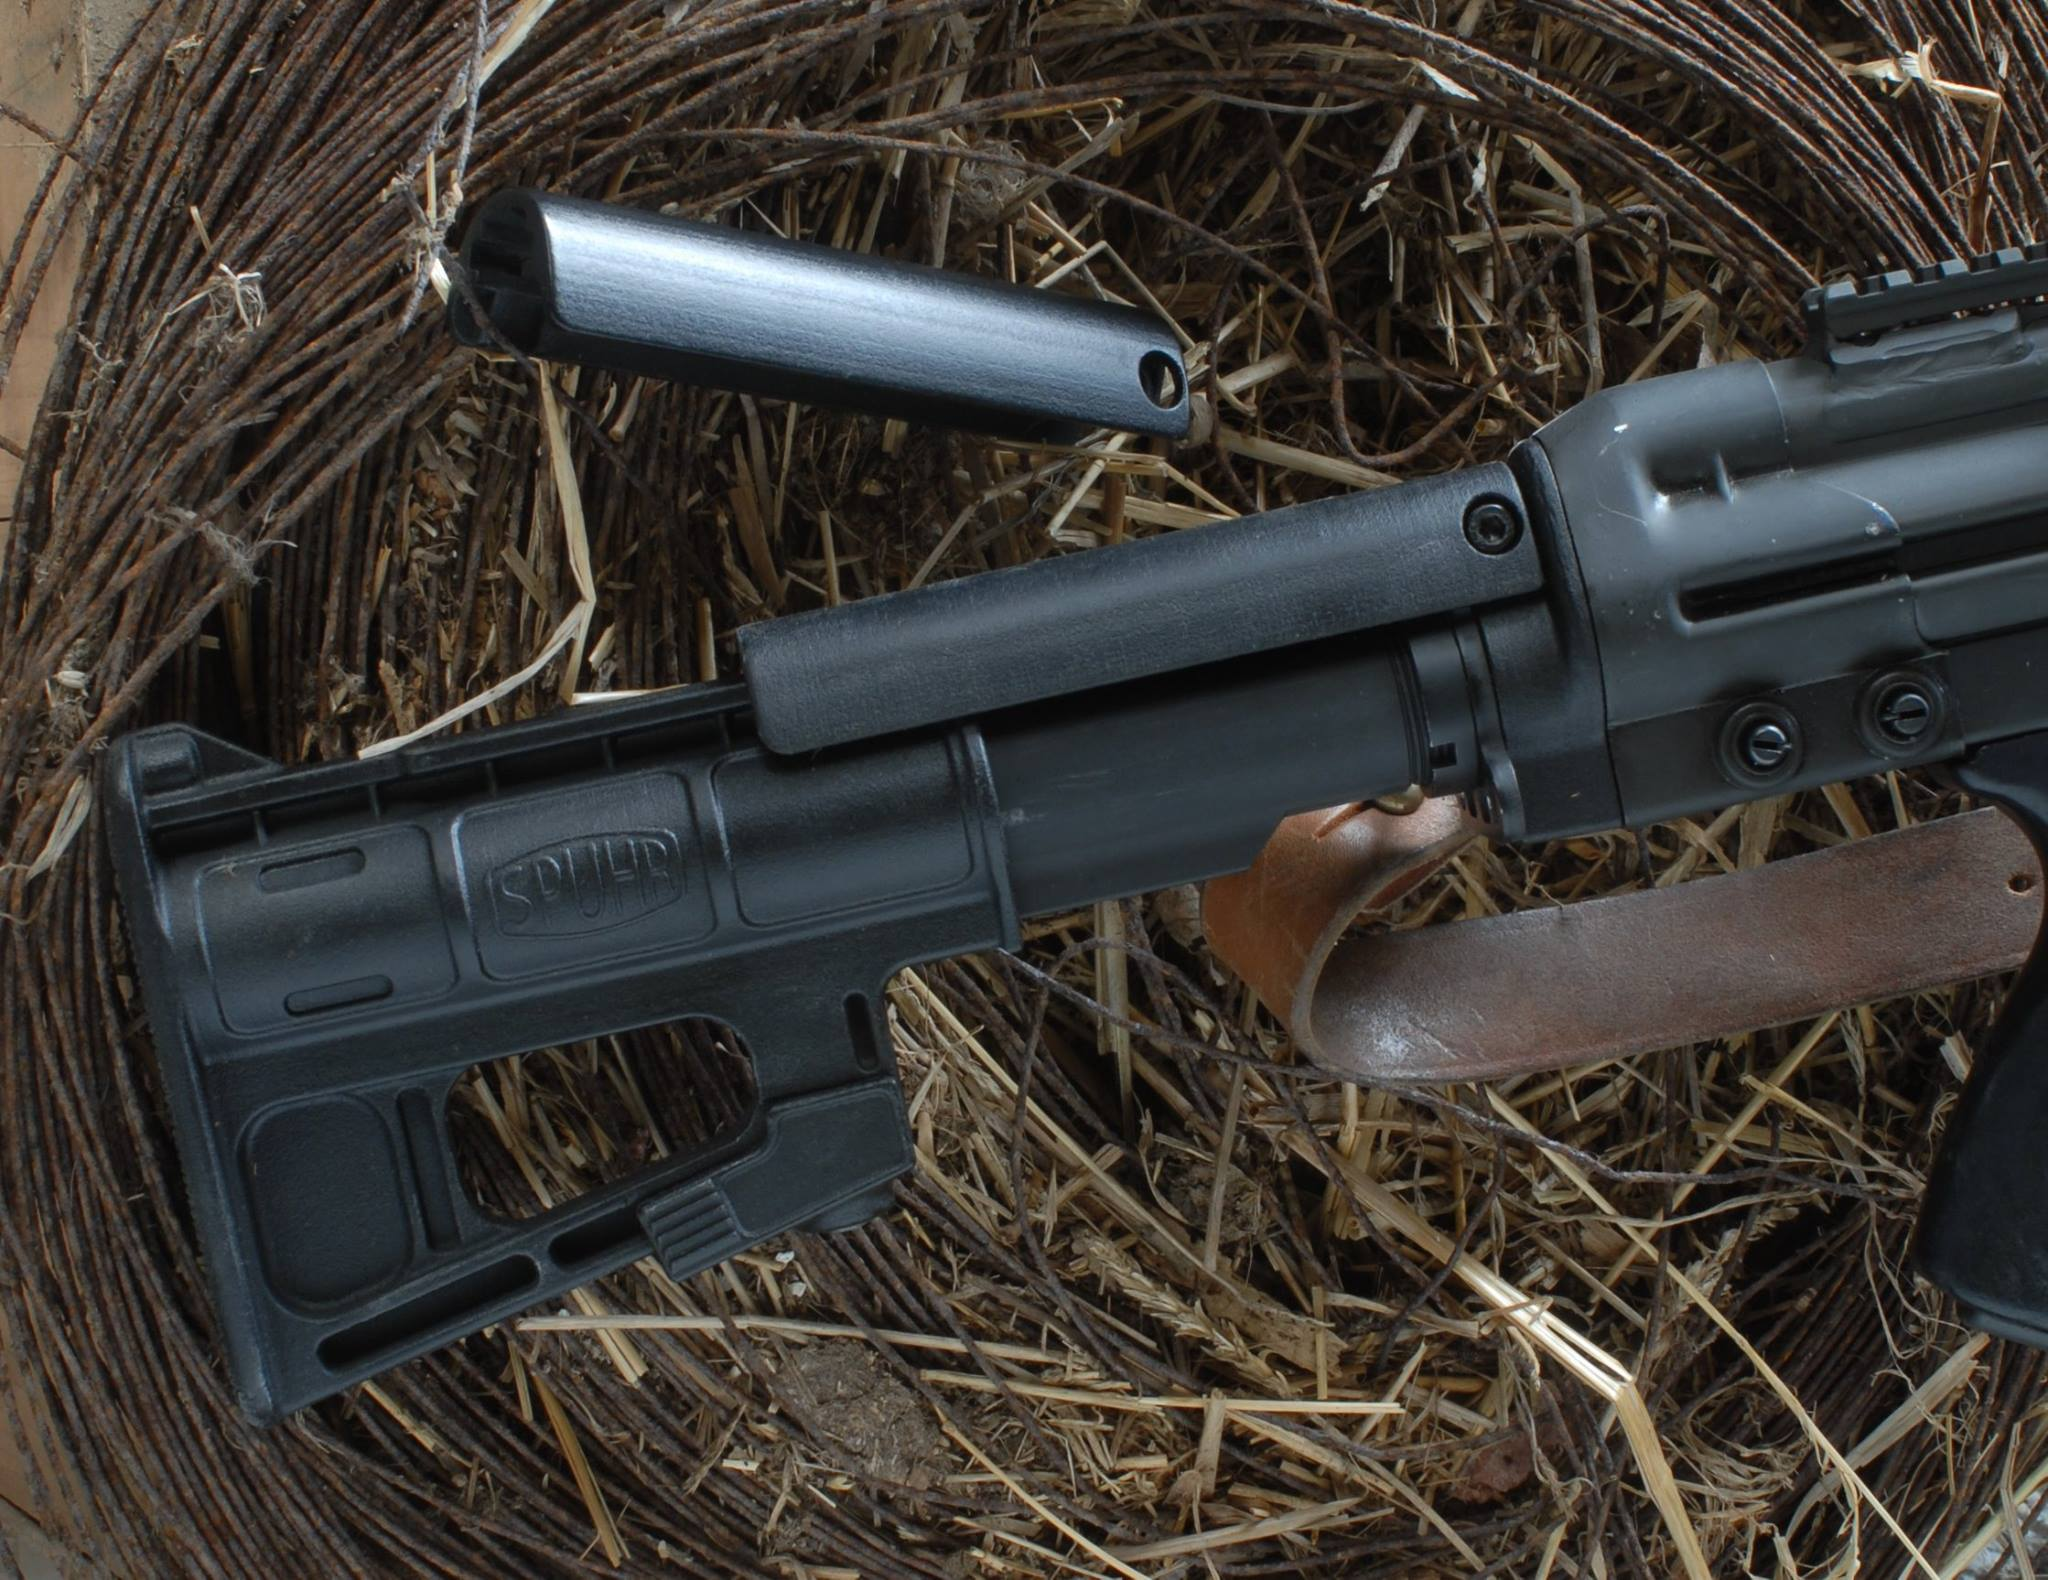 R-410 G3 Adjustable Stock